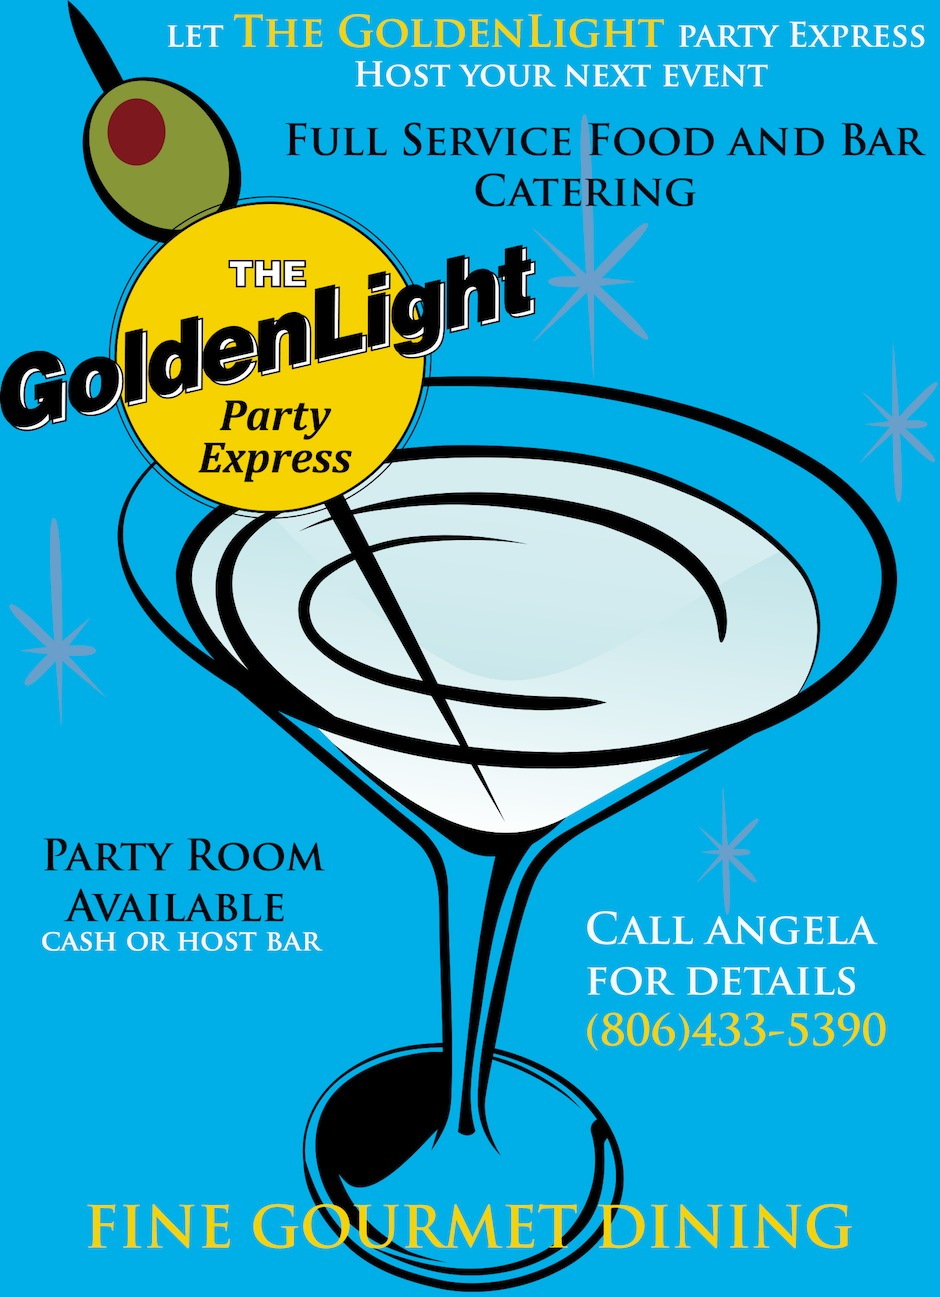 Let The GolenLight Party Express host your next event - Full service food and bar catering - Party room available, cash or host bar - Call Angela for details (806) 433-5390